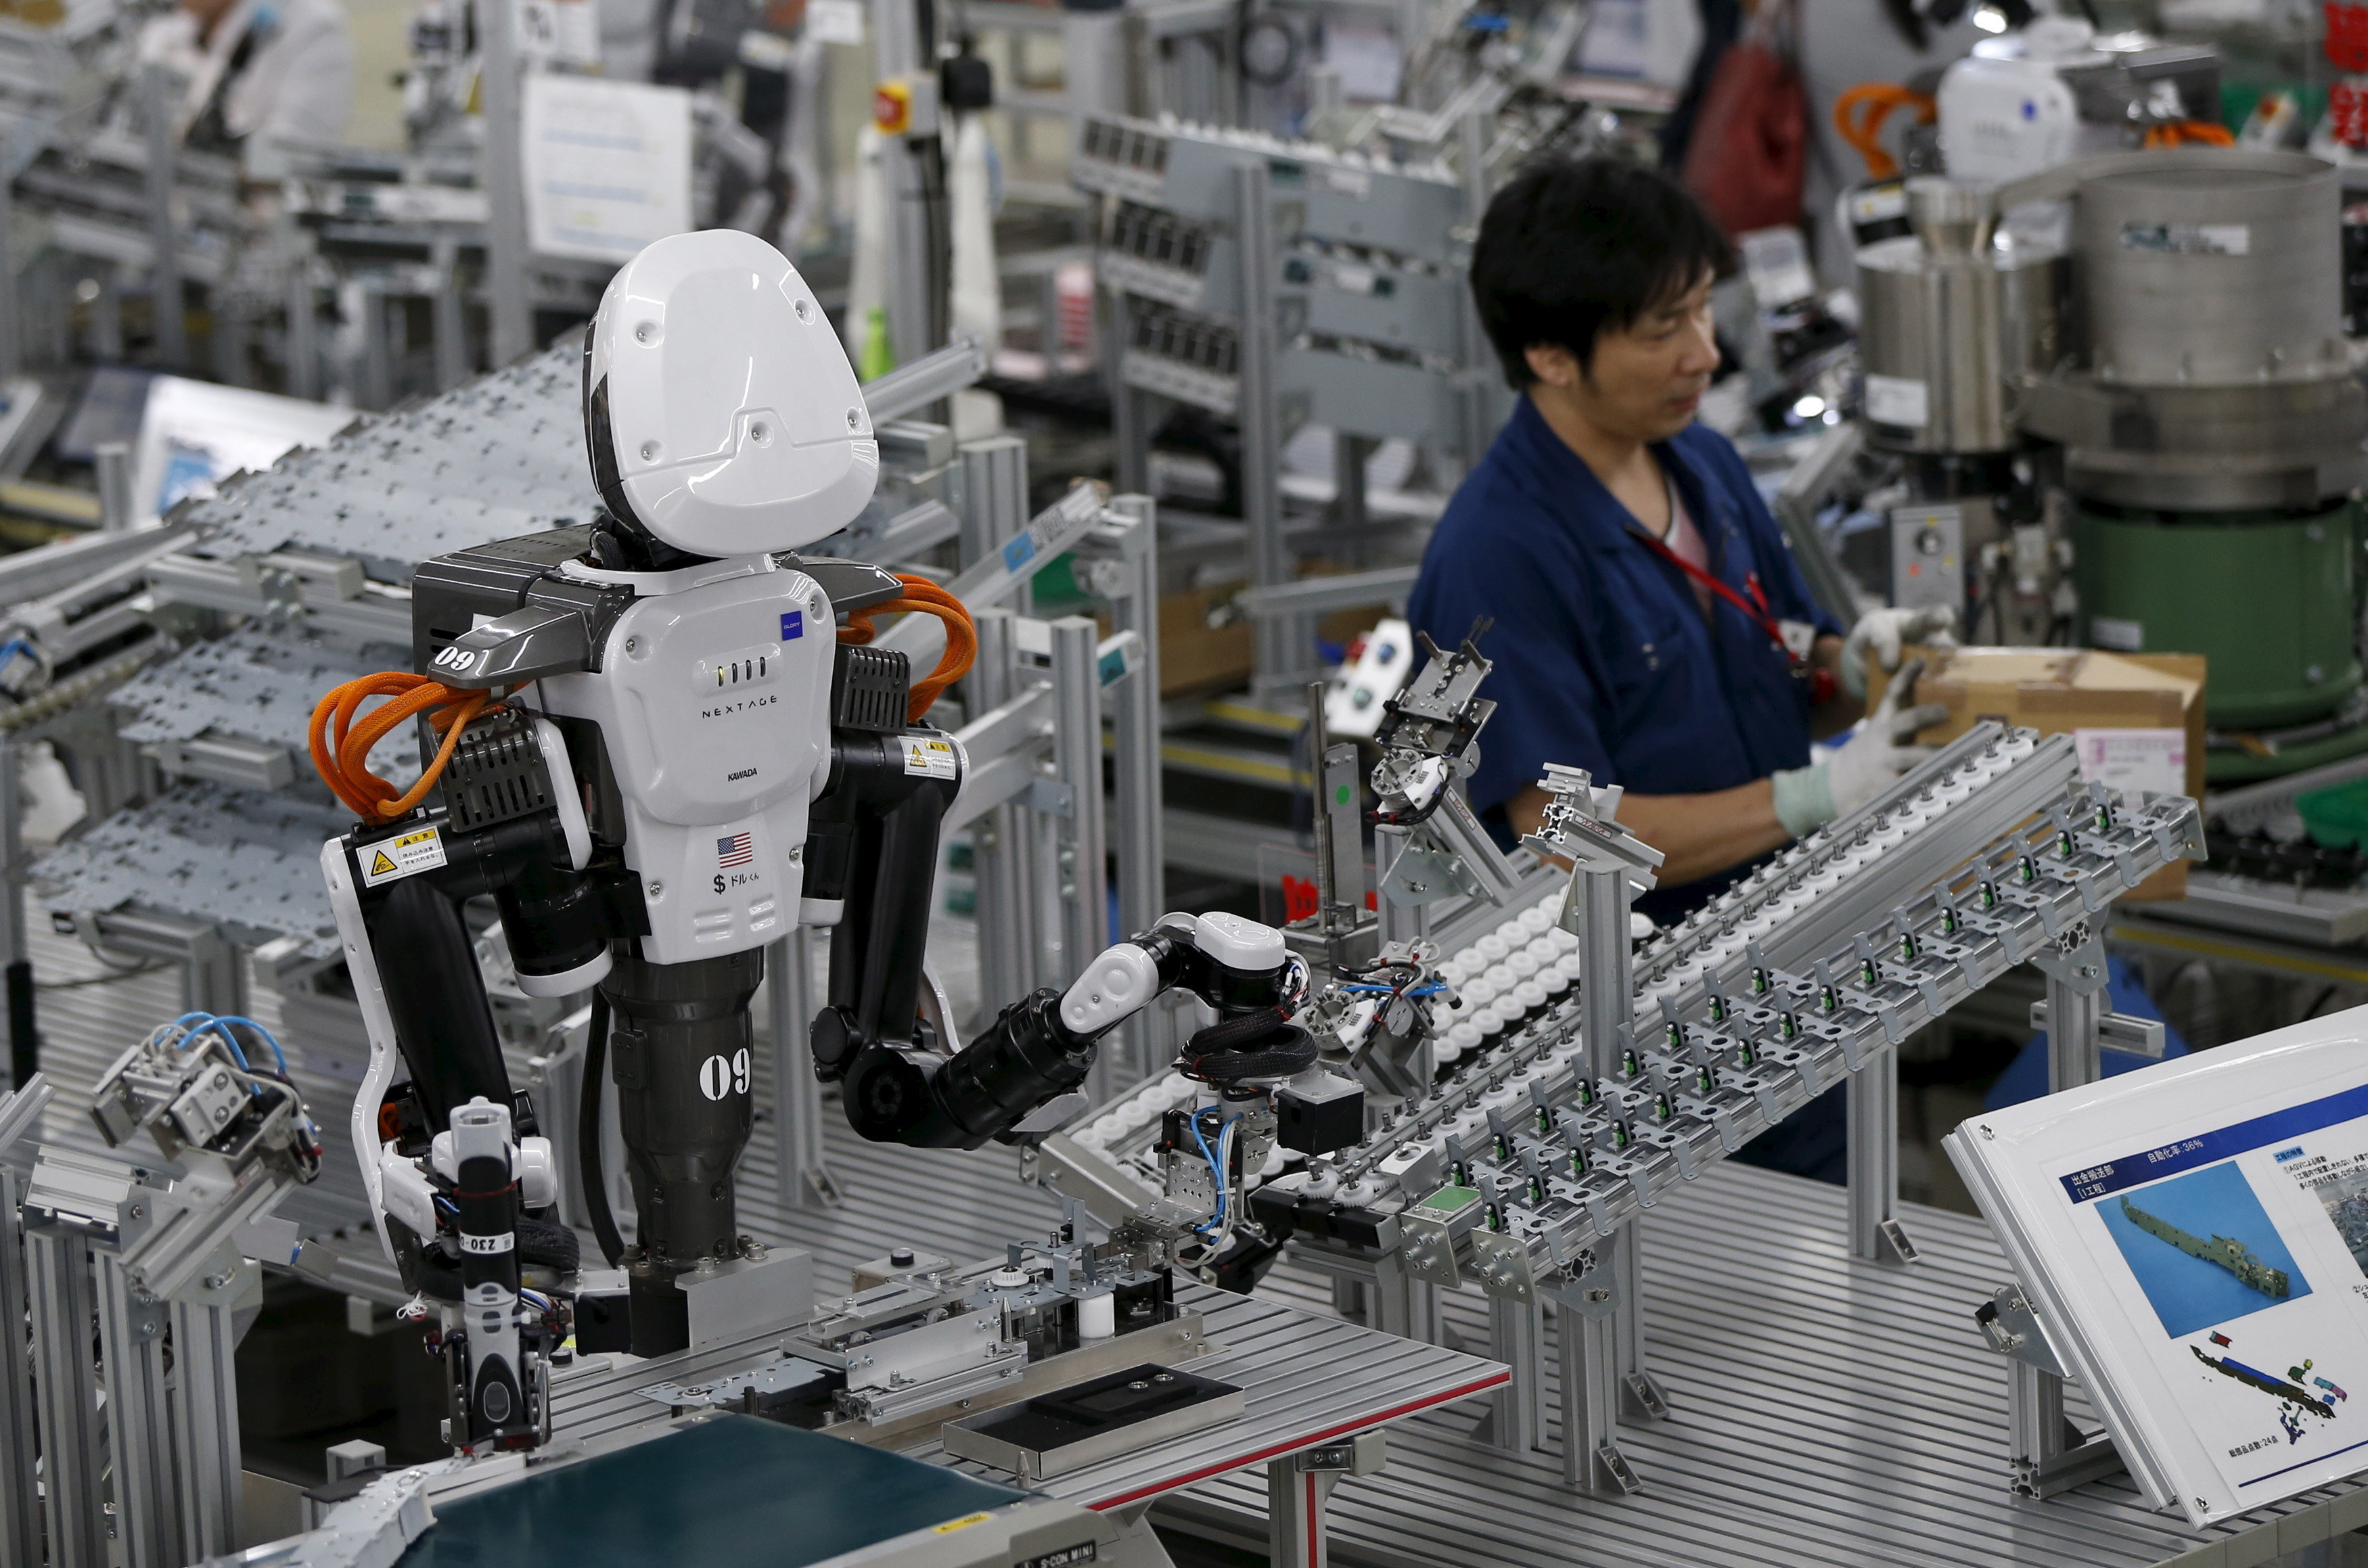 A humanoid robot works side by side with employees in the assembly line at a factory of Glory Ltd., a manufacturer of automatic change dispensers, in Kazo, north of Tokyo, Japan, July 1, 2015. Japanese firms are ramping up spending on robotics and automation, responding at last to premier Shinzo Abe's efforts to stimulate the economy and end two decades of stagnation and deflation. Picture taken July 1, 2015. REUTERS/Issei Kato - GF10000147193